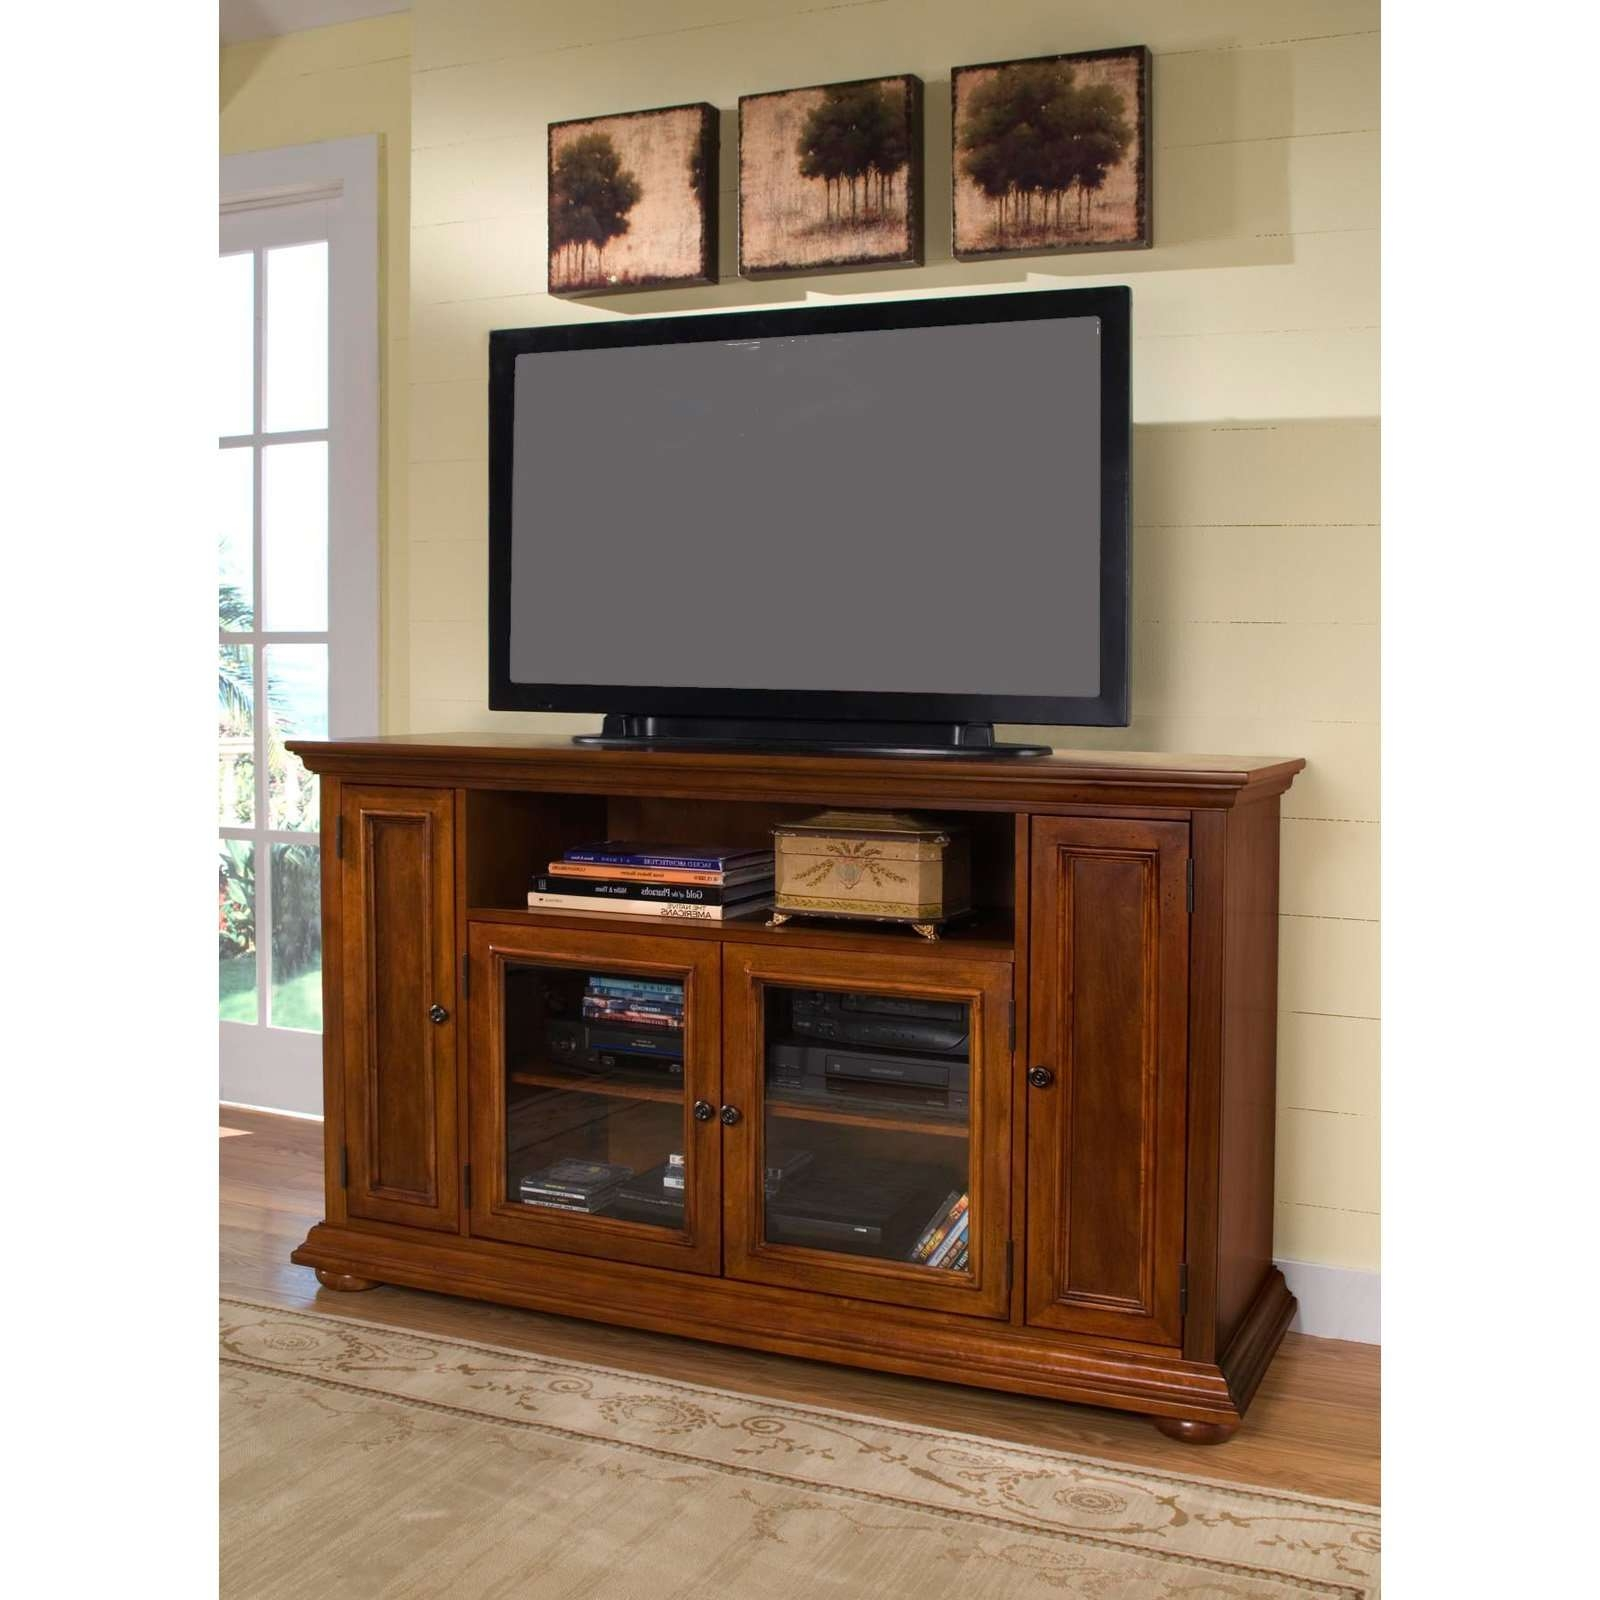 Retro Black Oak Wood Tv Stand With Glass Doors Of Tall Tv Stands Inside Oak Tv Stands With Glass Doors (View 11 of 15)